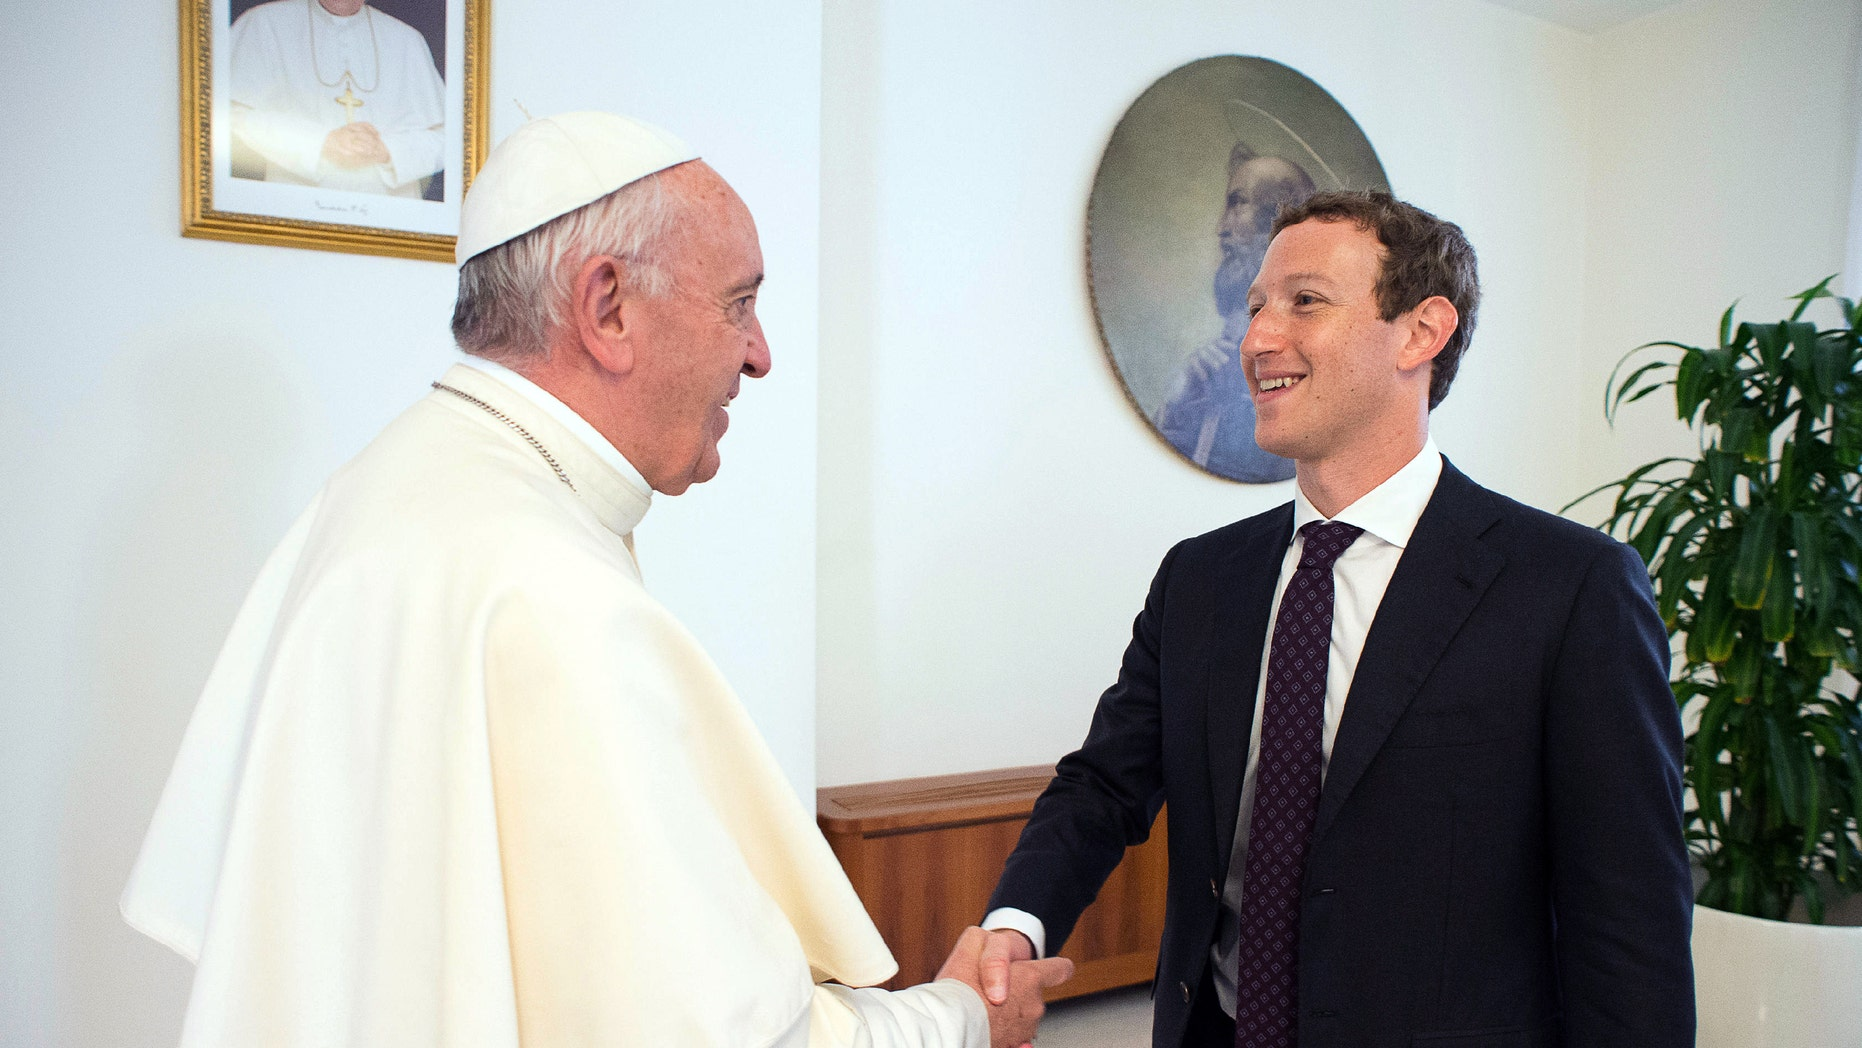 Pope Francis meets Facebook founder and CEO Mark Zuckerberg, at the Santa Marta residence, the guest house in Vatican City where the pope lives, Monday, Aug. 29, 2016. (L'Osservatore Romano/Pool Photo via AP)